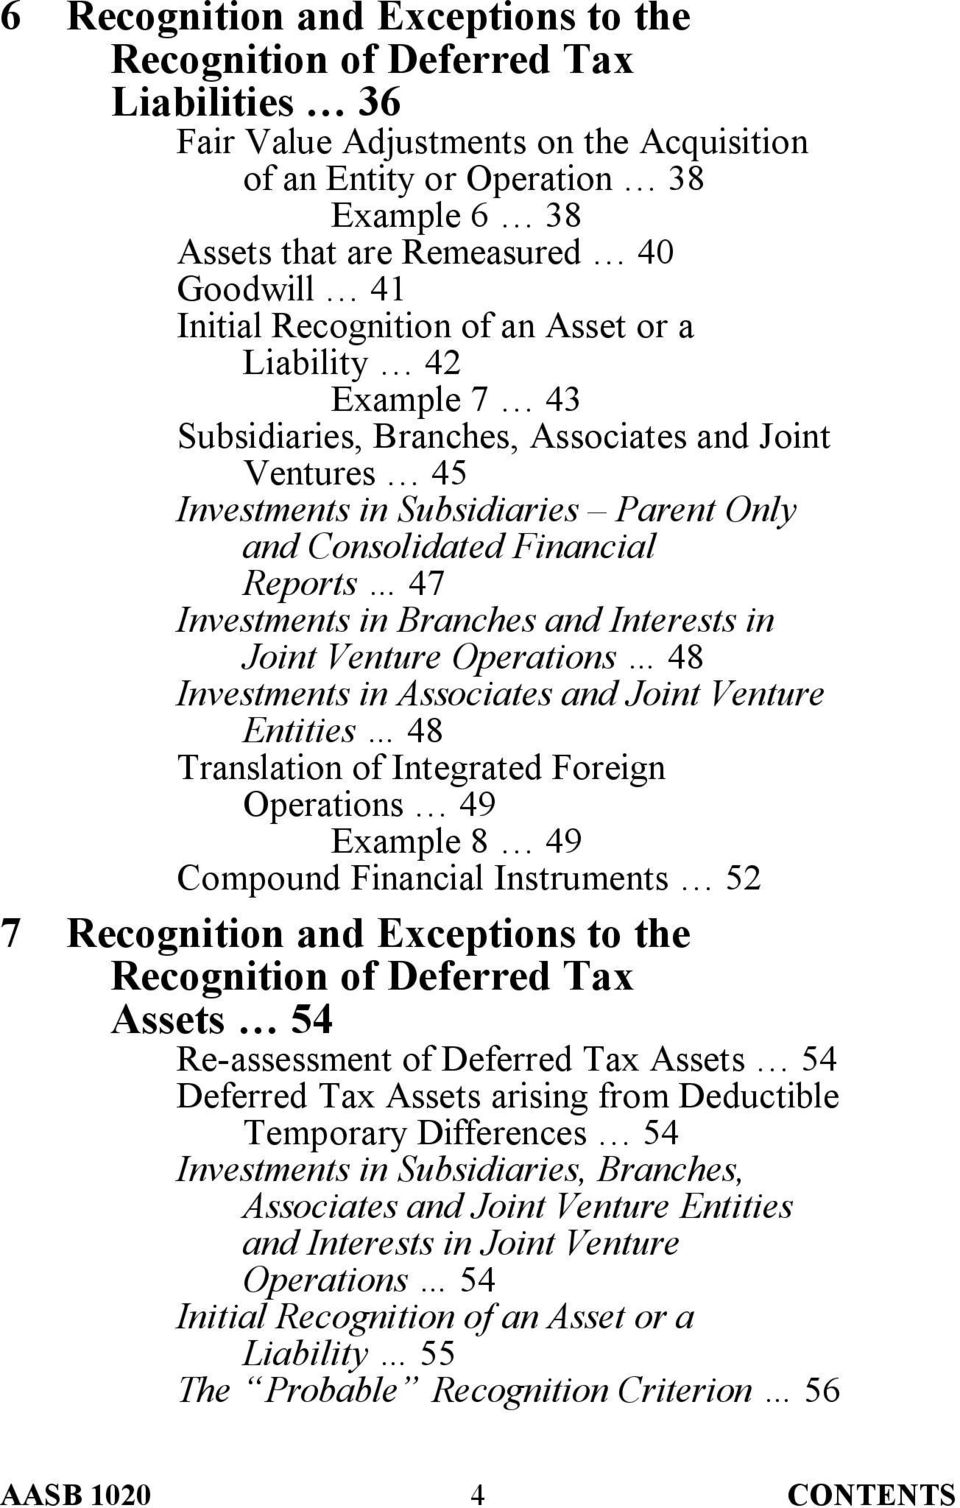 Reports 47 Investments in Branches and Interests in Joint Venture Operations 48 Investments in Associates and Joint Venture Entities 48 Translation of Integrated Foreign Operations 49 Example 8 49